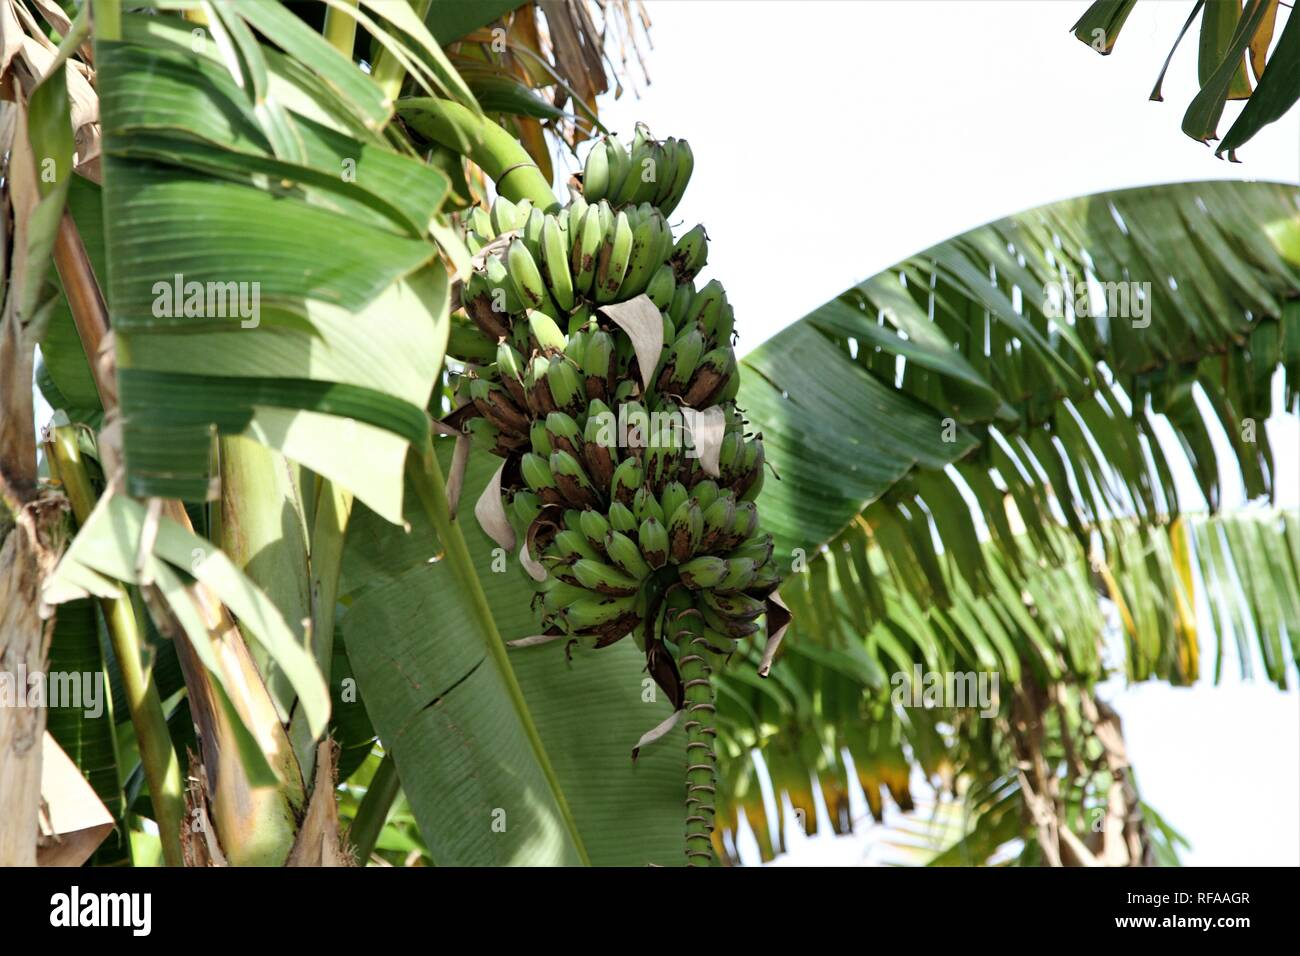 Fresh bananas growing on a tree - Stock Image